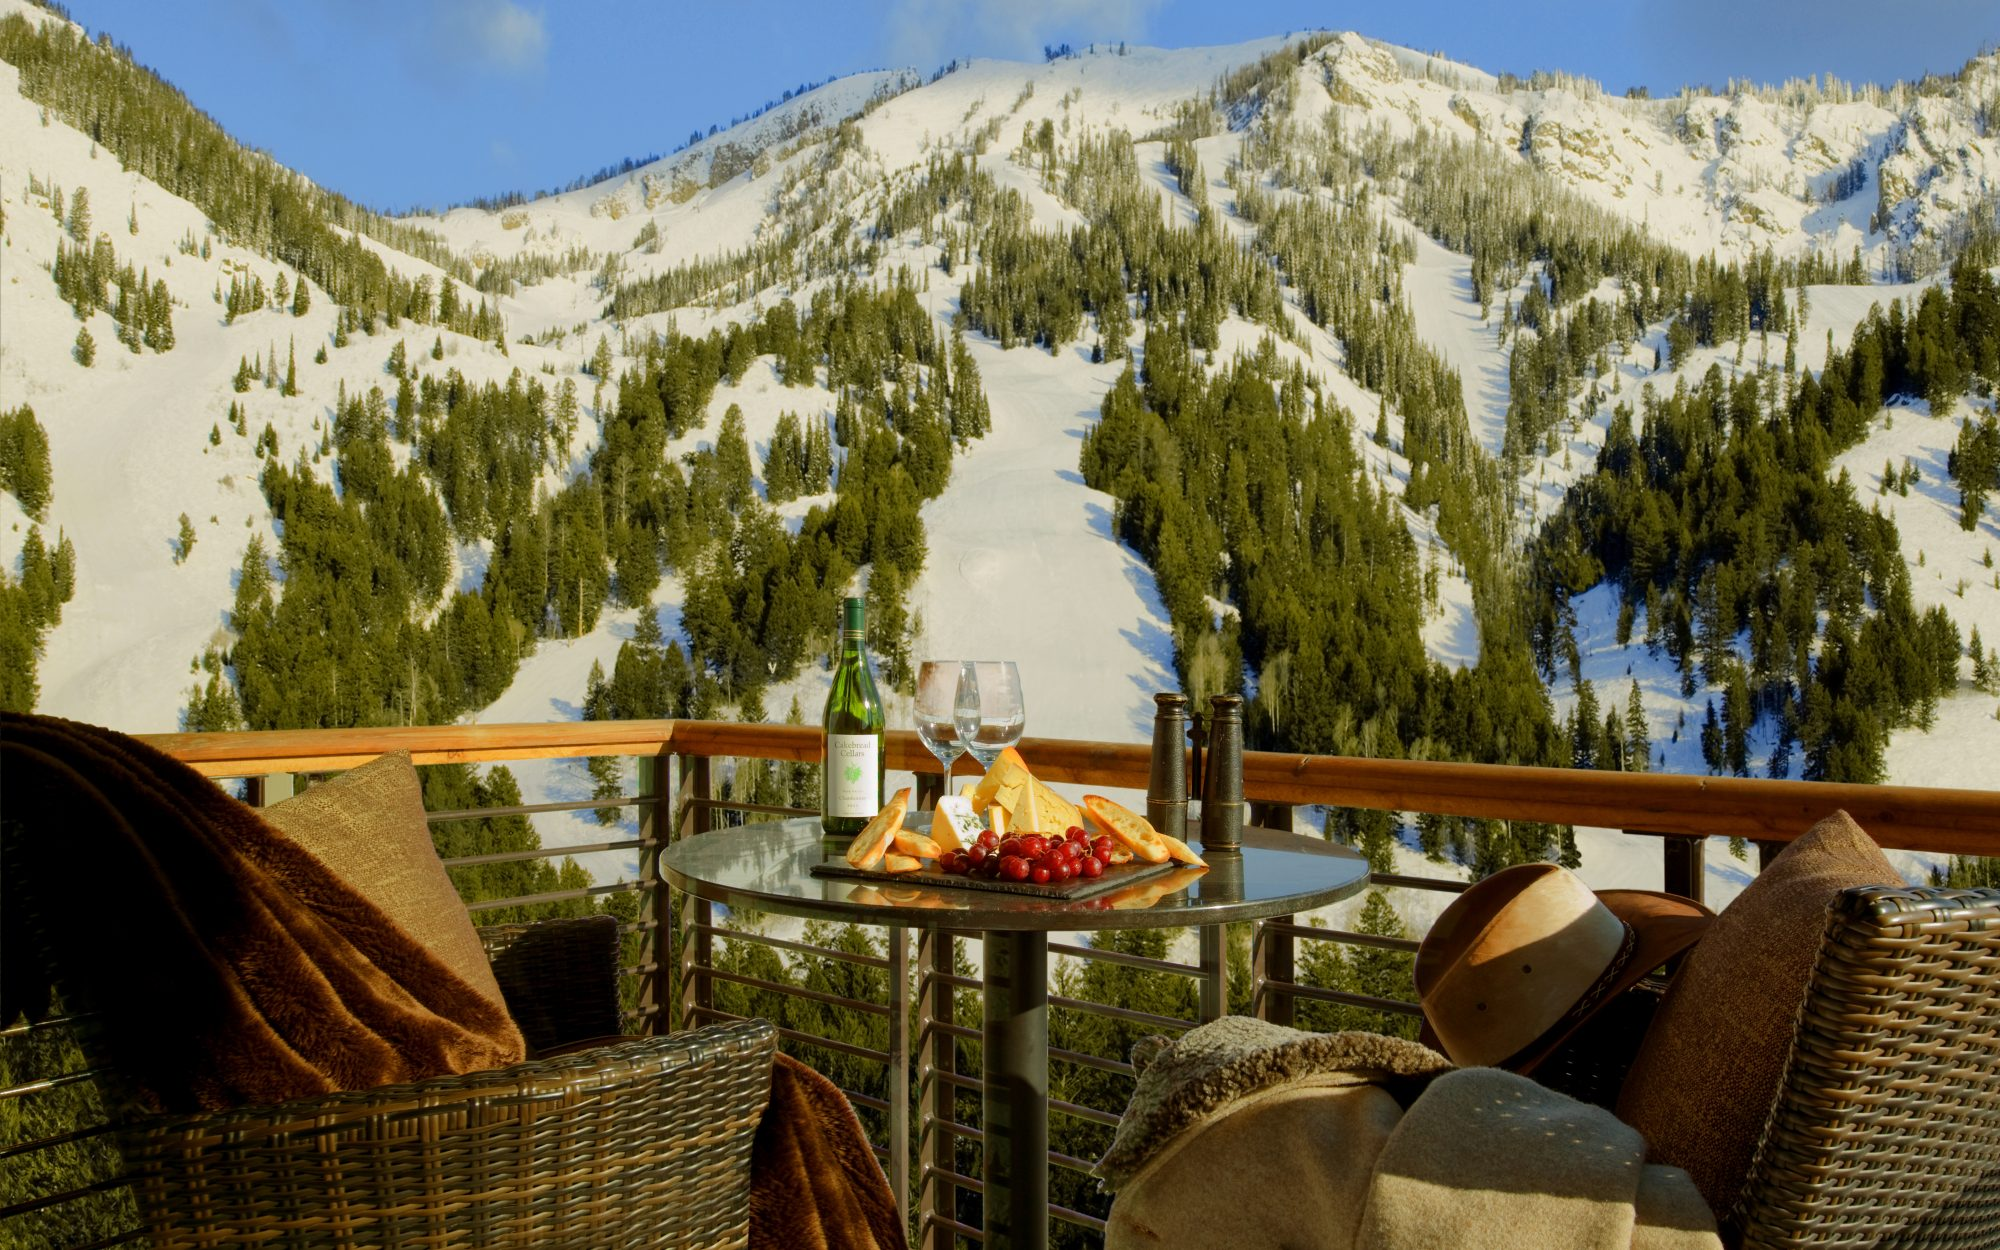 Best Resorts in the Continental U.S.: Hotel Terra Jackson Hole, Teton Village, Wyoming